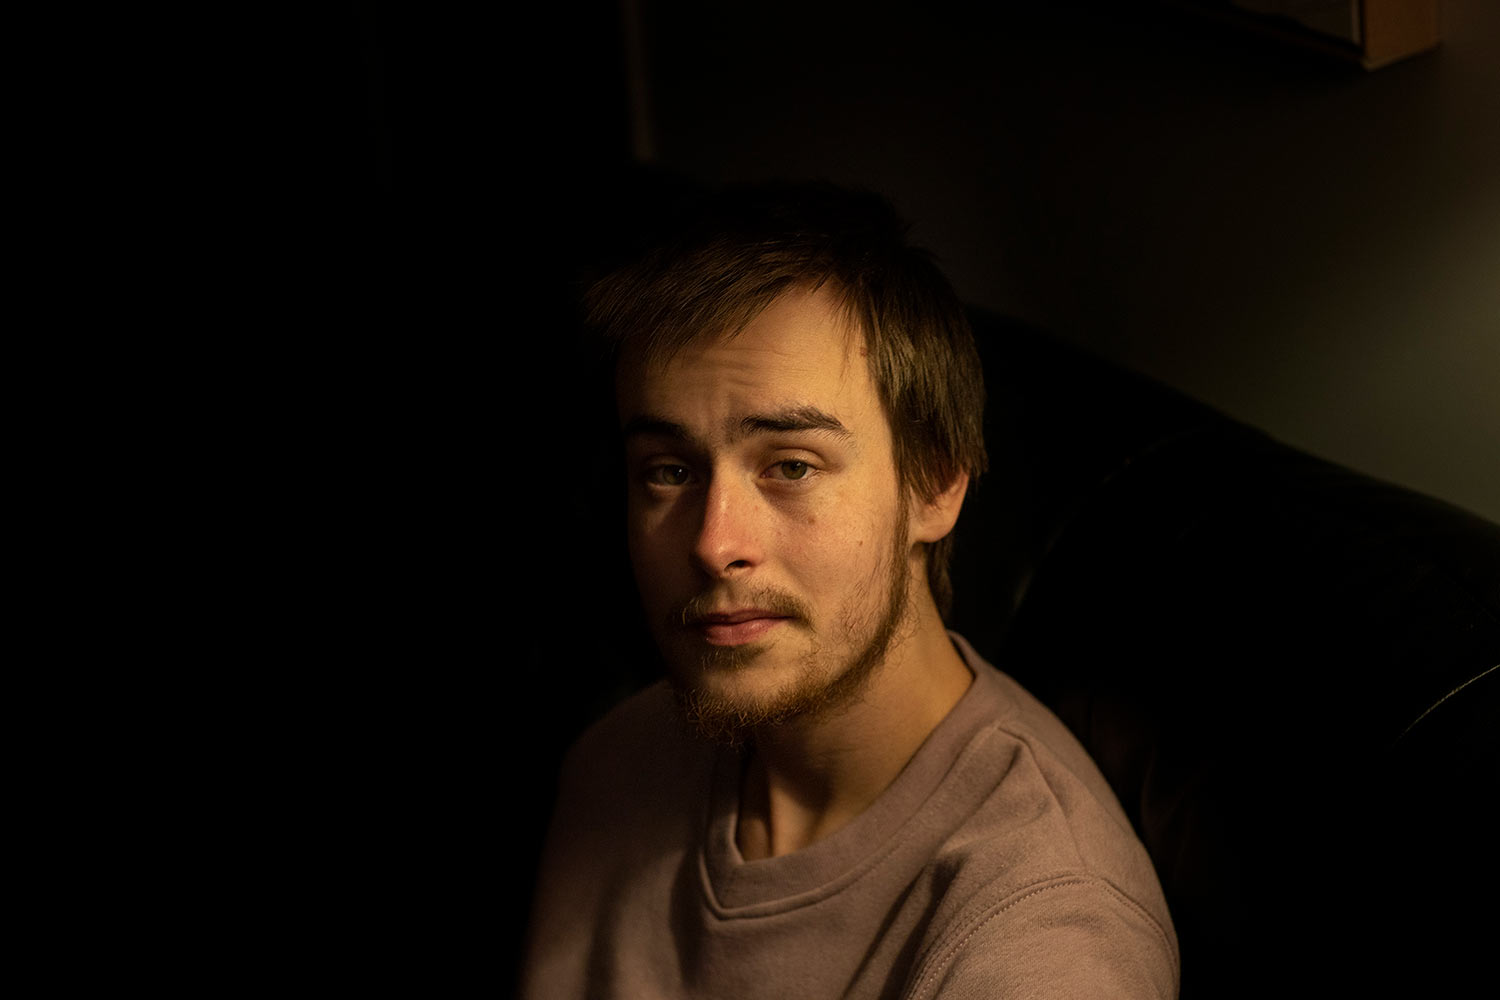 Sam Ware, 22, sits for a photo in his mother's home, in Fountaindale, Central Coast, Australia, Friday, July 19, 2019. (AP Photo/David Goldman)